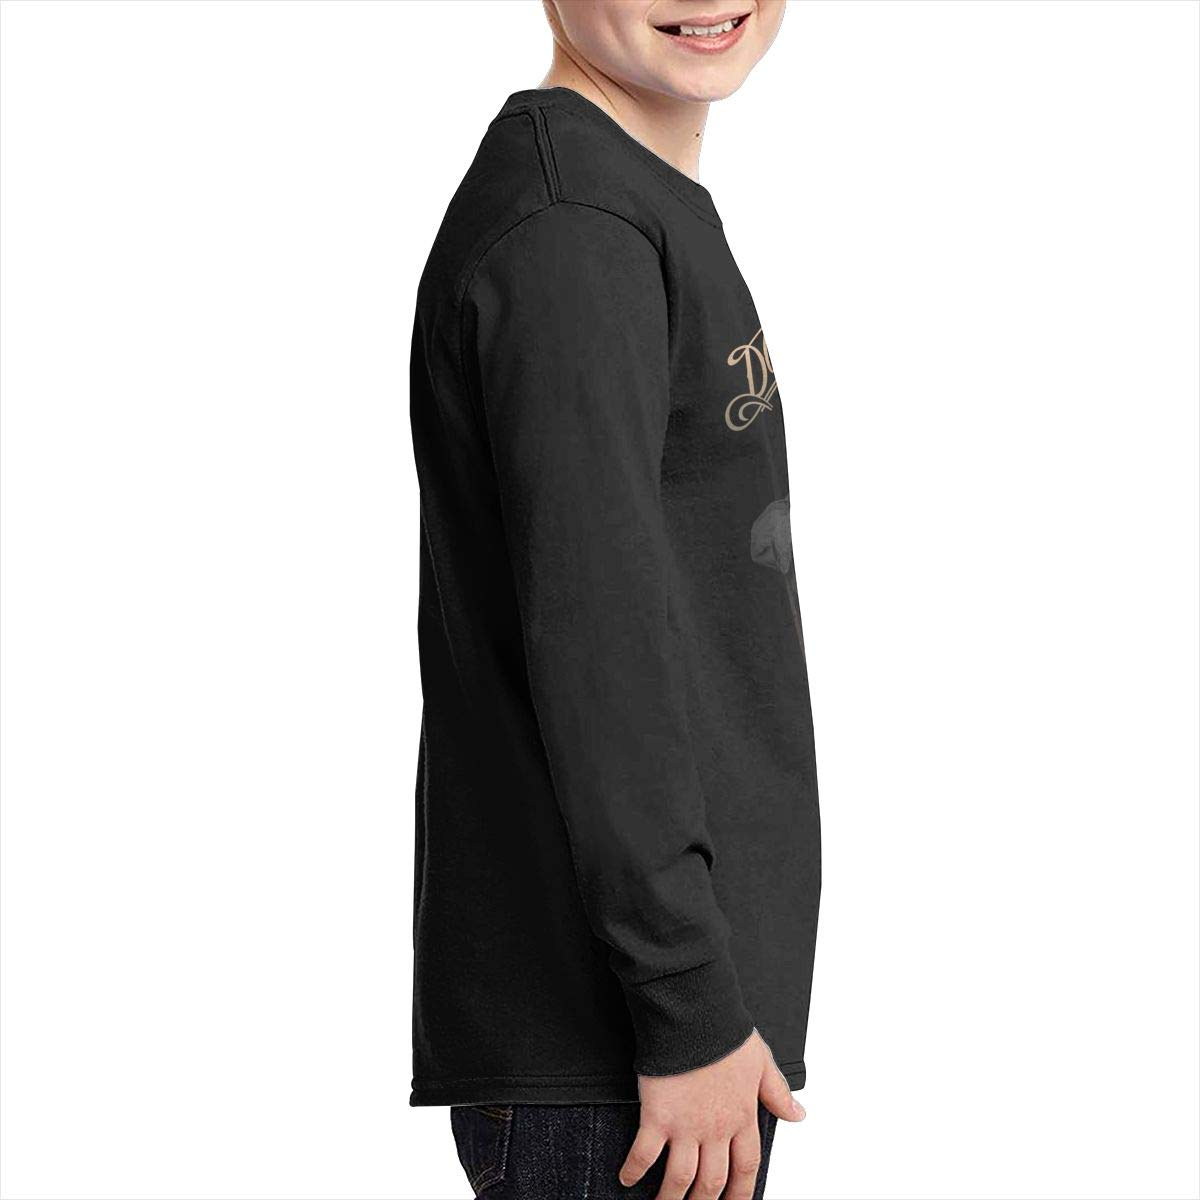 MichaelHazzard Don Williams Youth Comfortable Long Sleeve Crewneck Tee T-Shirt for Boys and Girls